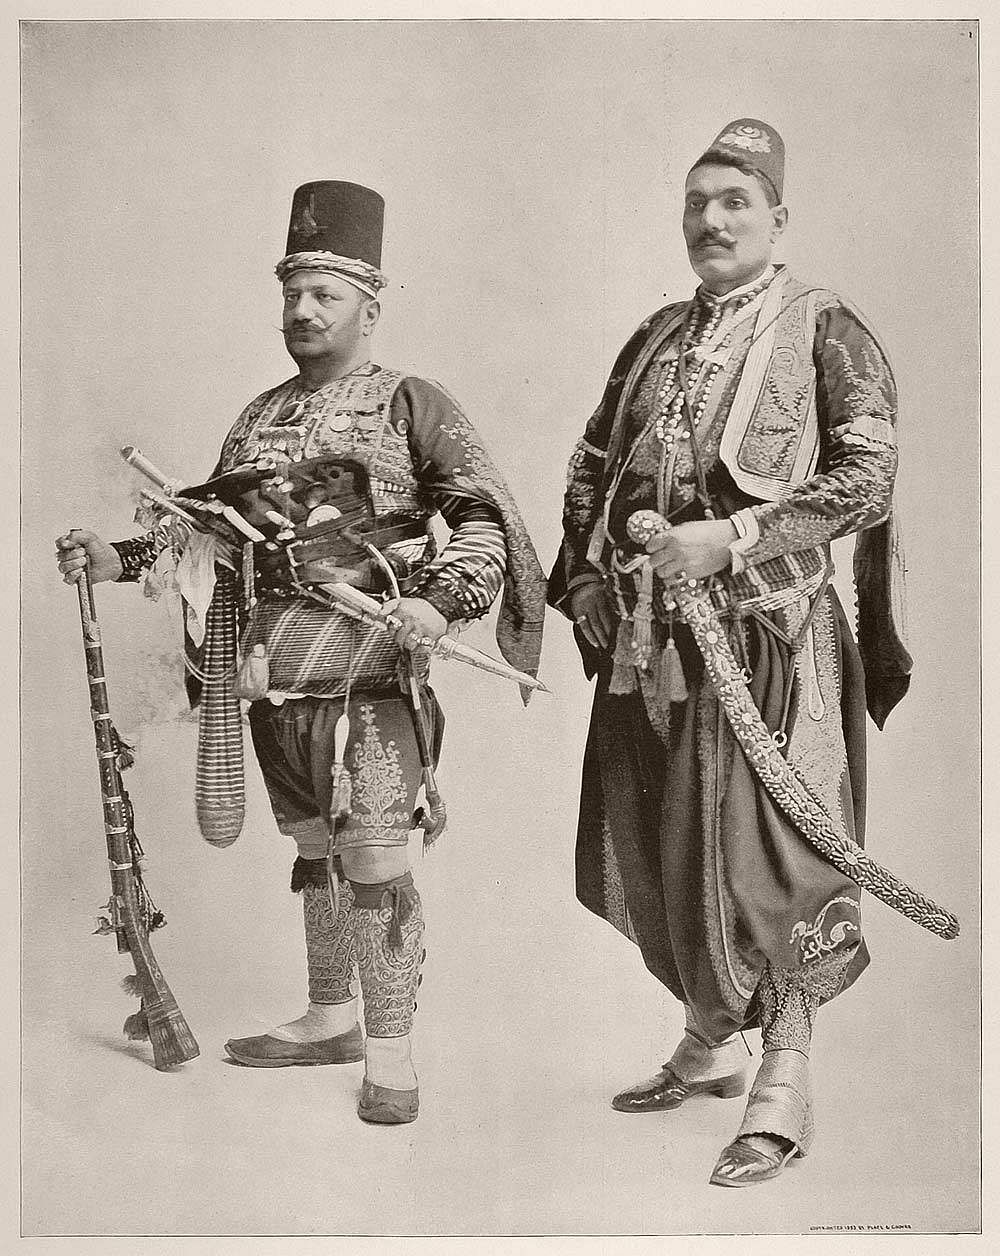 Nichan, an Armenian man in the uniform of the Janizaries, a Turkish military band of soldiers. The figure on the left is a Greek man.